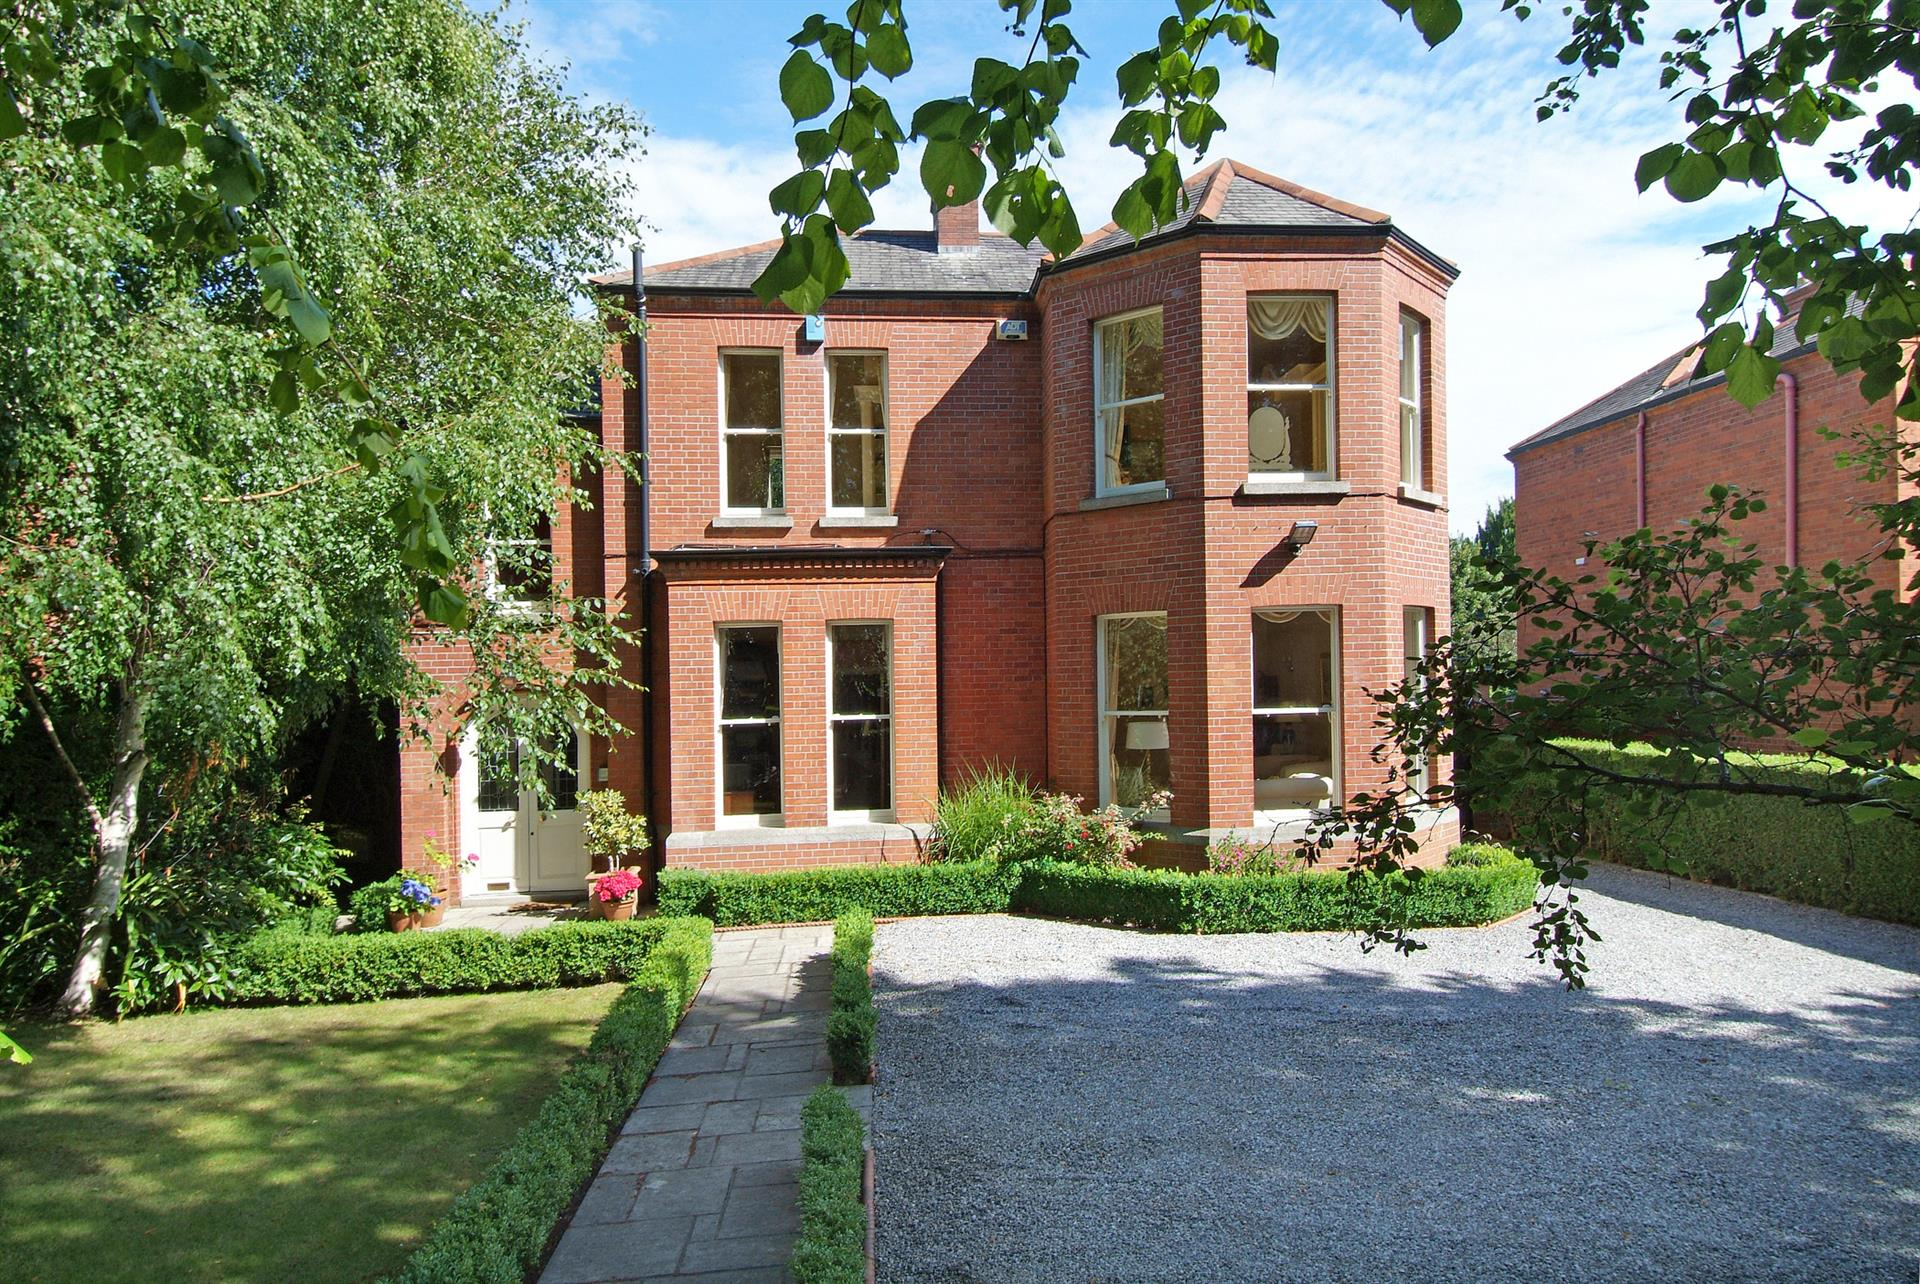 Ireland real estate for sale christie 39 s international for Luxury homes for sale ireland